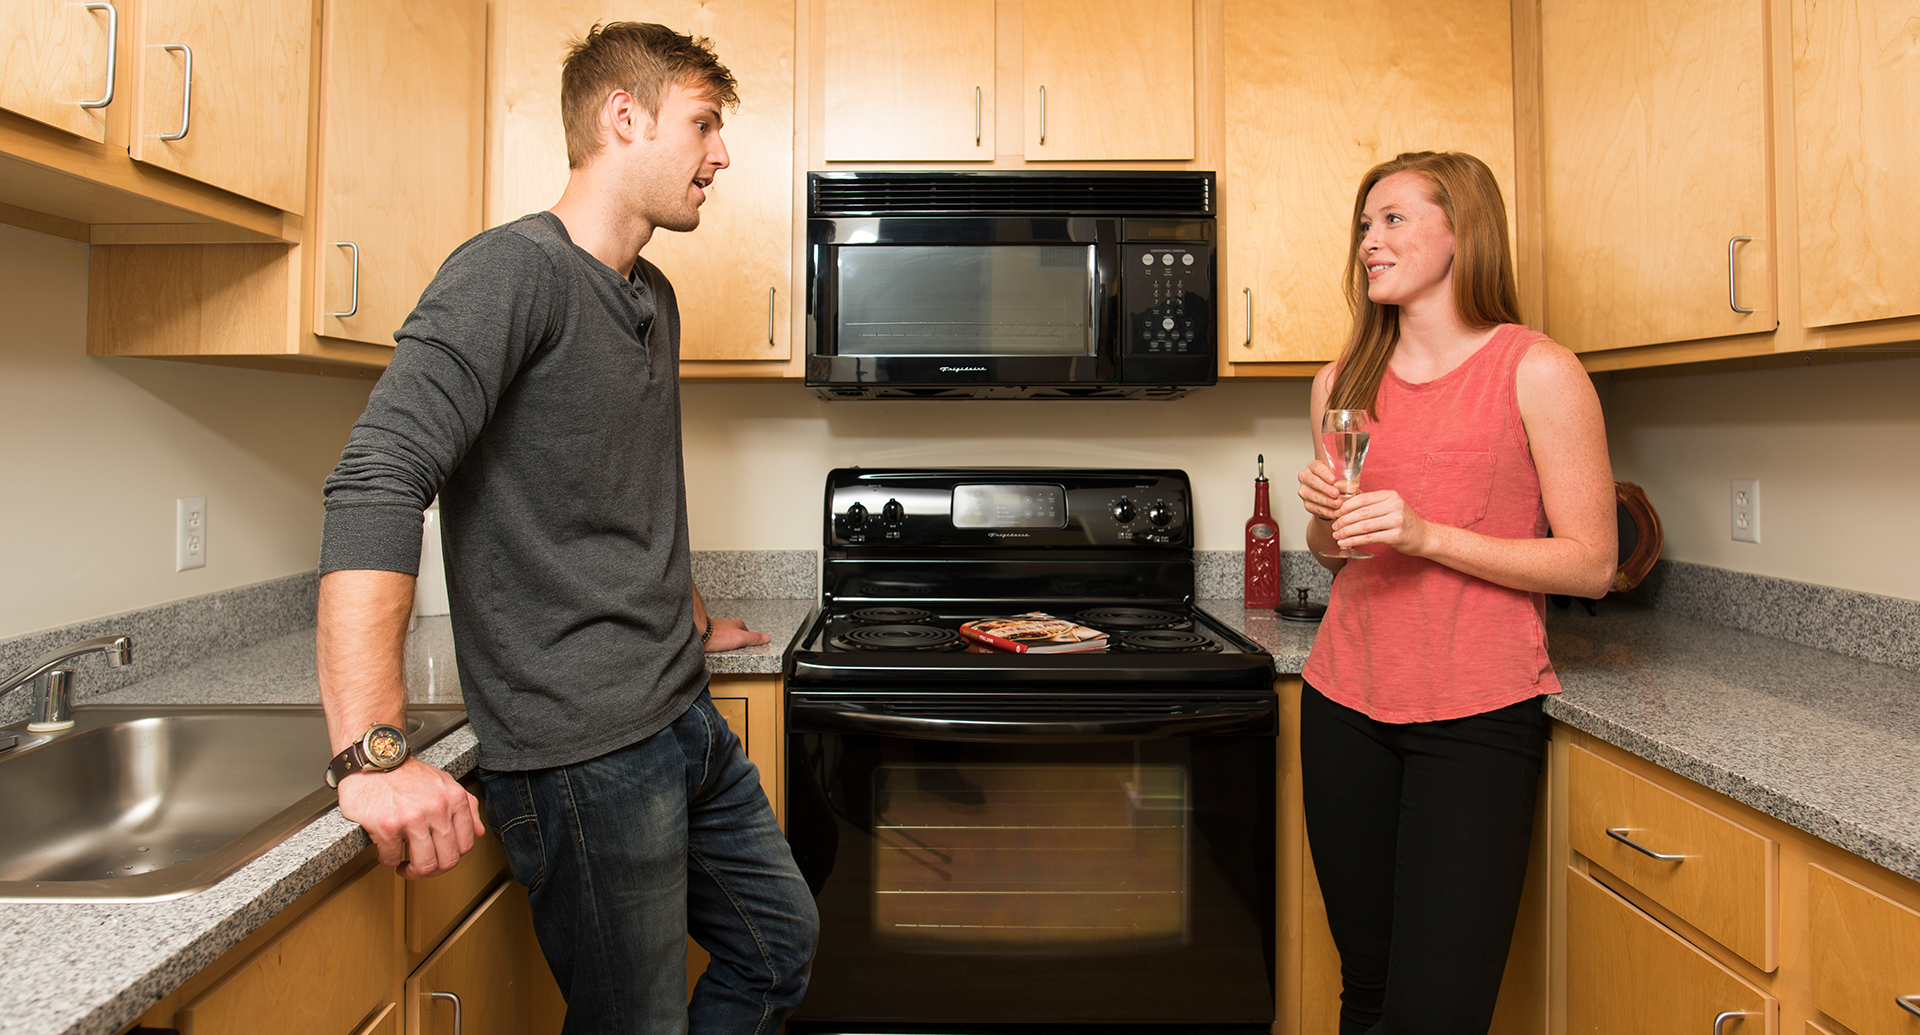 Residents in the kitchen in Downtown Wilmington, DE apartments